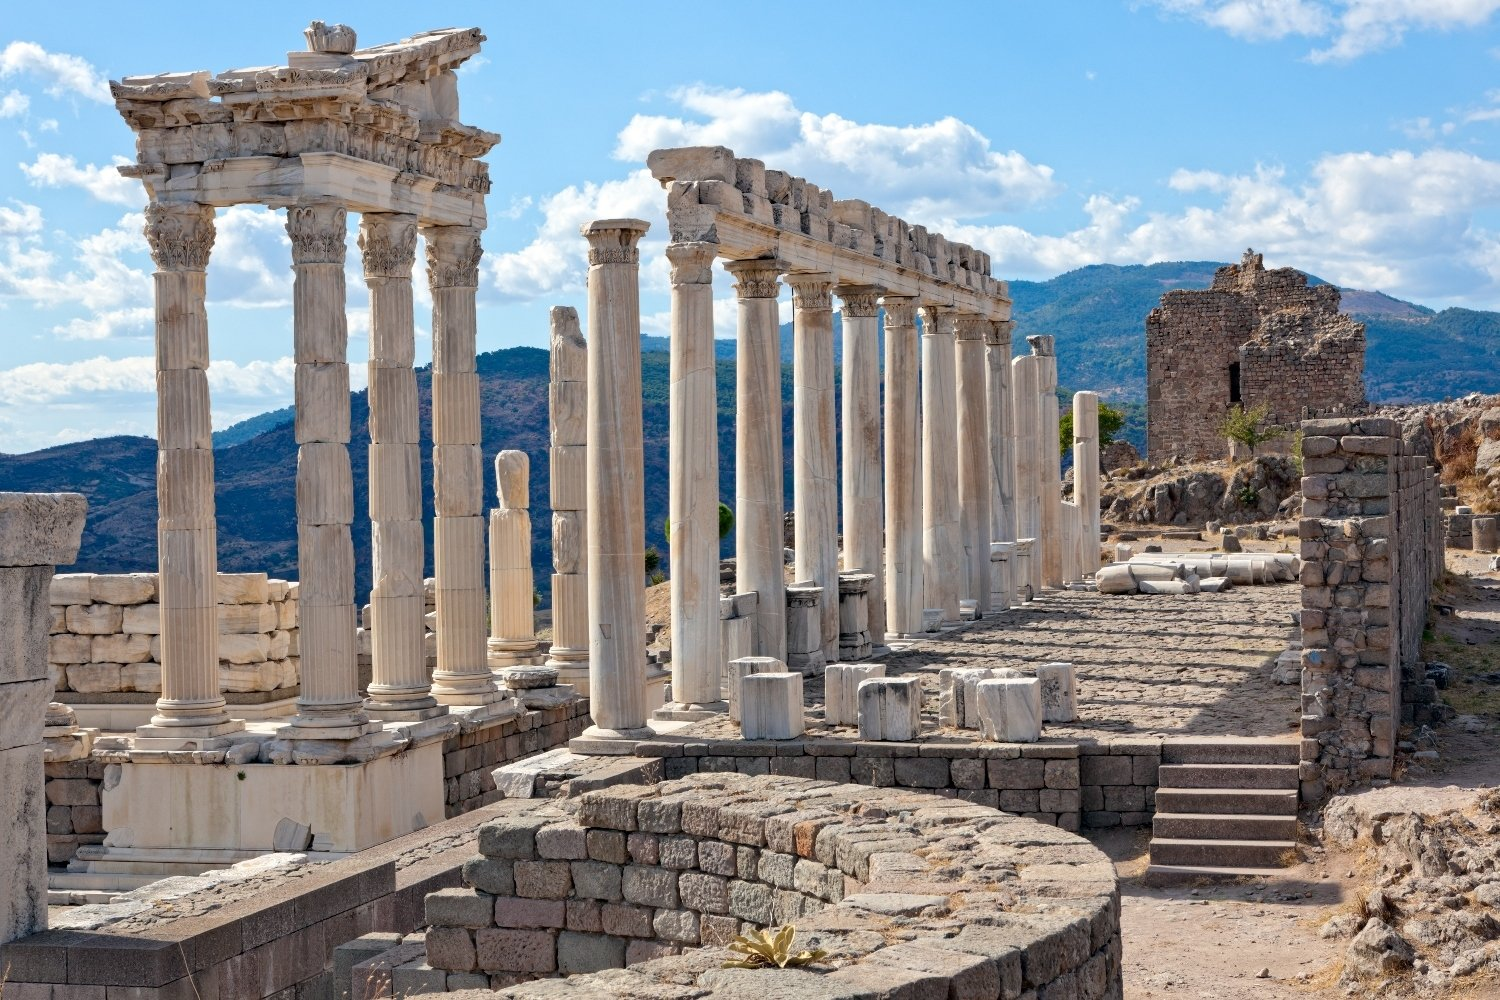 The ancient city of Pergamon was the administrative center of the Kingdom of Pergamon.